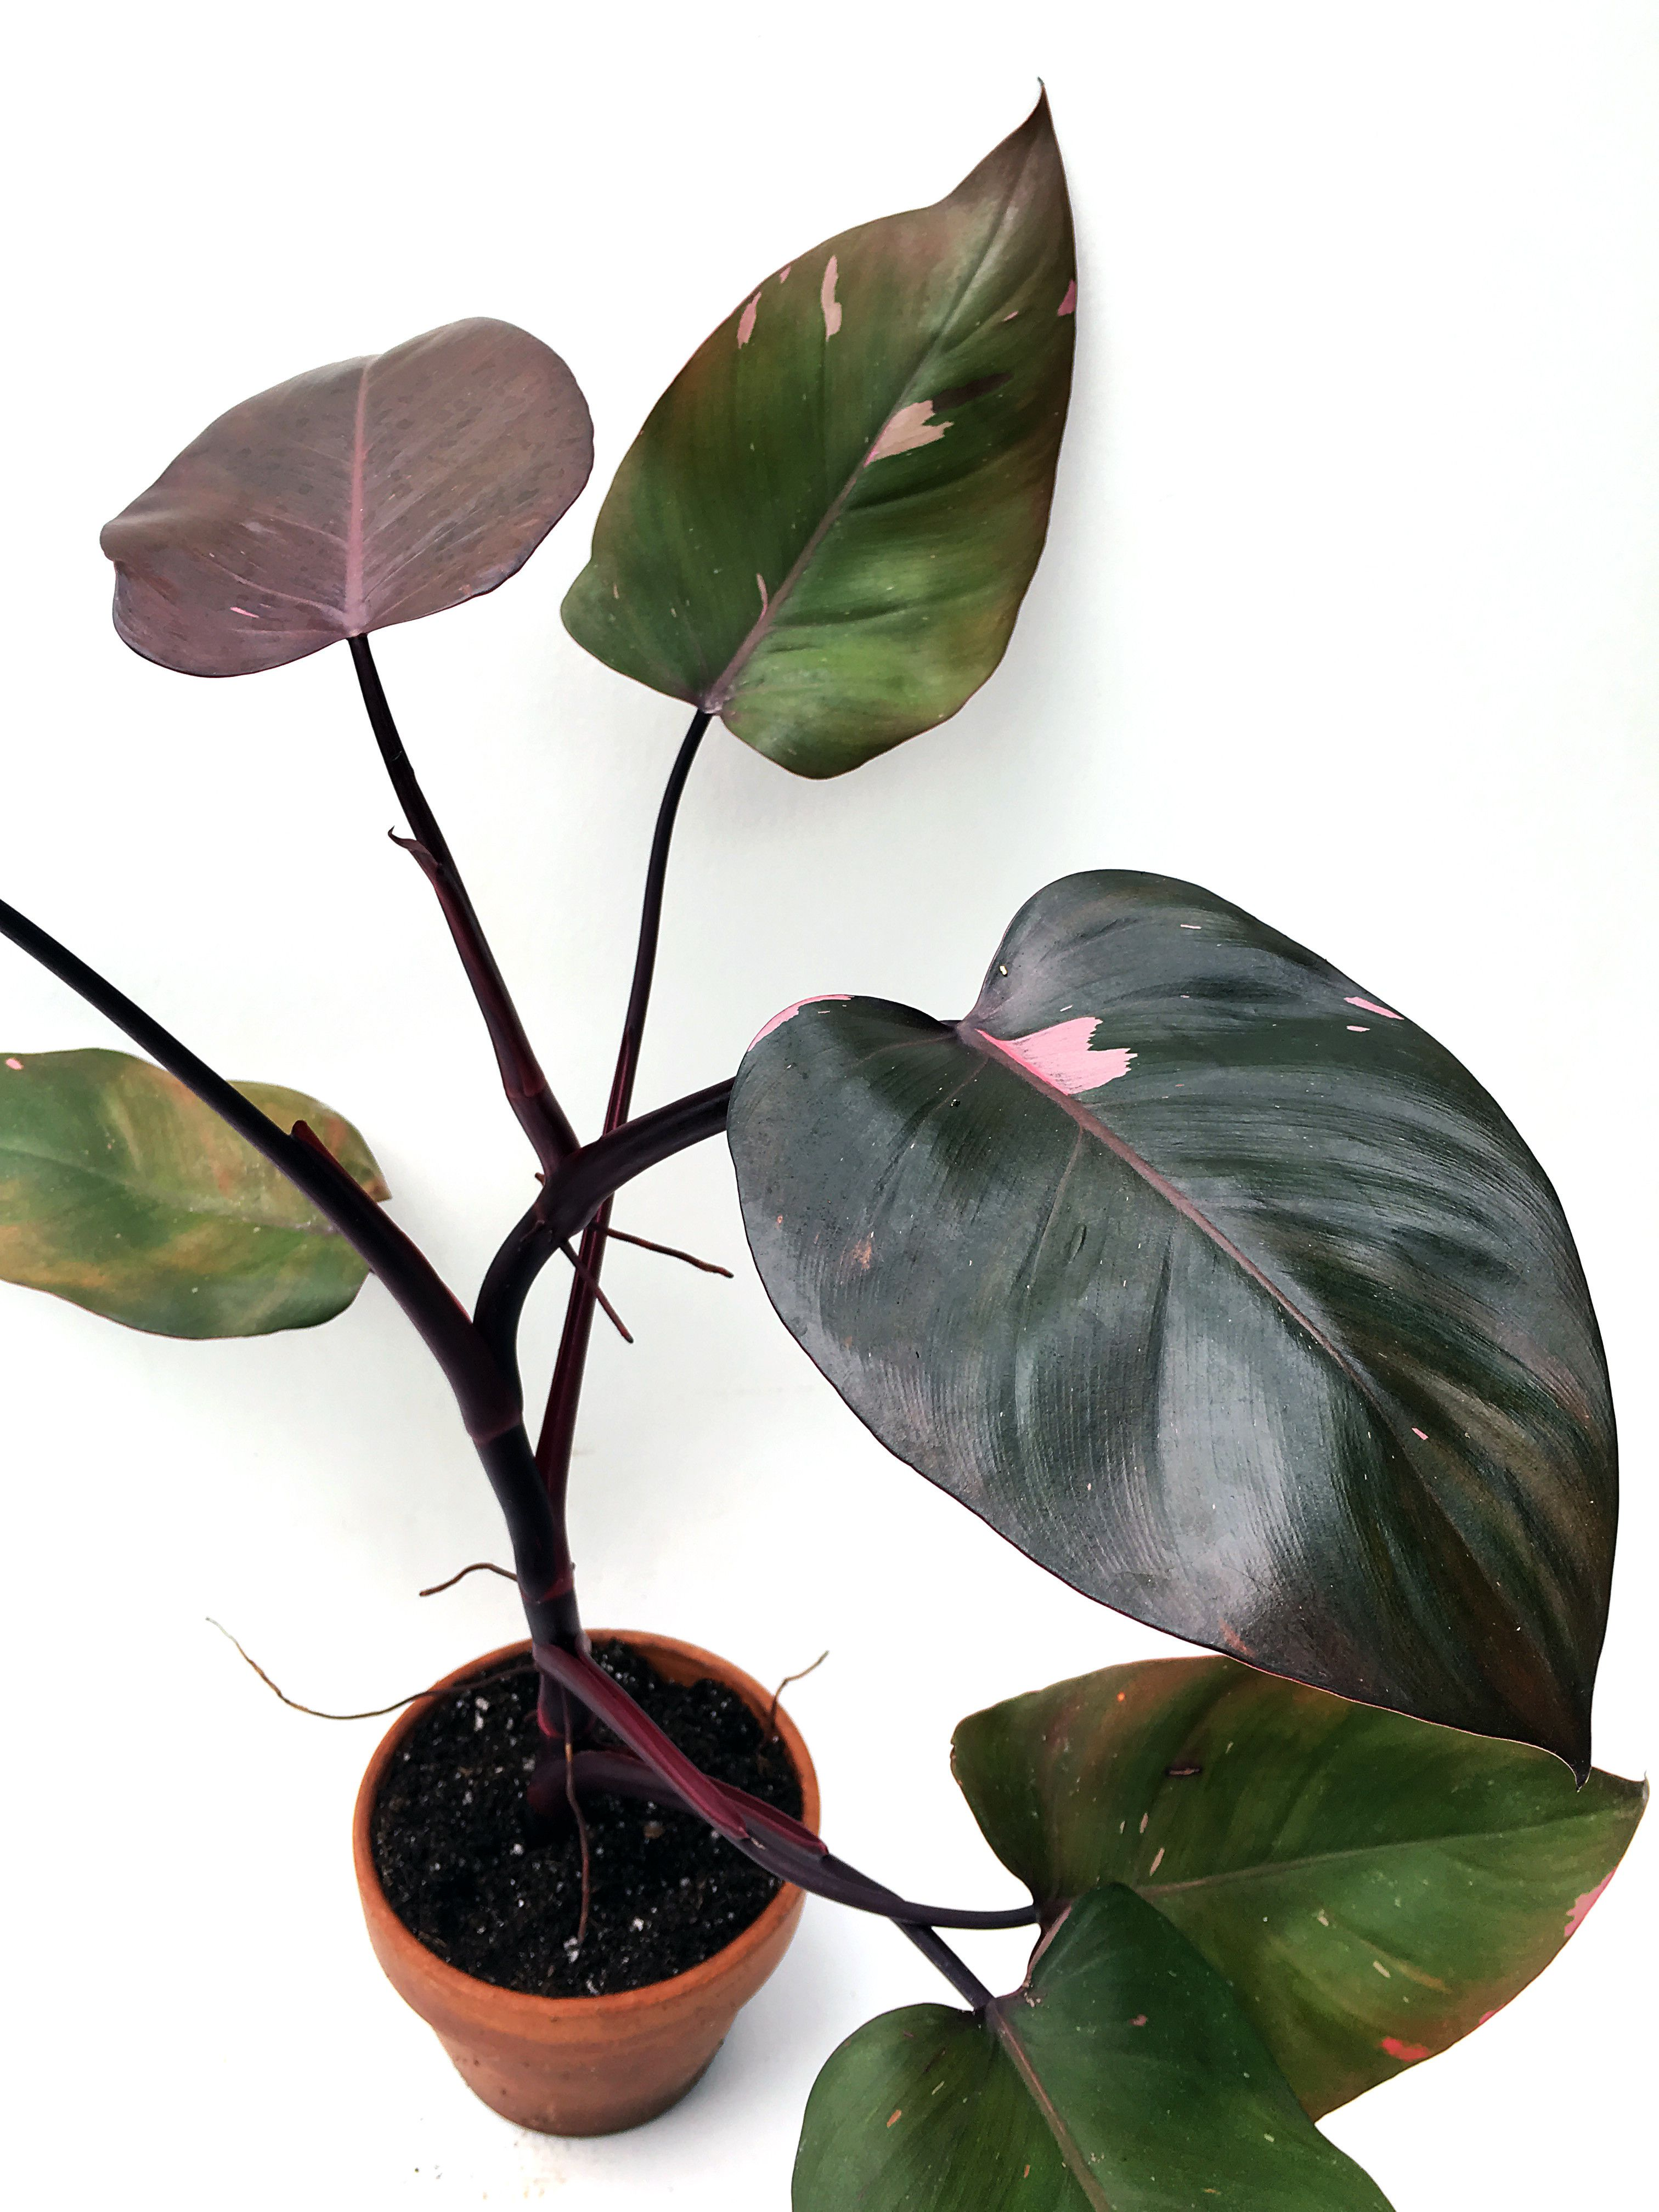 Reverted Philodendron 'Pink Princess' (Philodendron ... on names of tea bags, names of plants, names of climbers, names of hibiscus, names of gifts, names of gardens, names of art, names of health, names of soil, names of corn, names of water, names of perennials, names of baskets, names of design, names of pests, names of biennials, names of greenhouses, names of wildlife, names of bromeliads, names of vines,